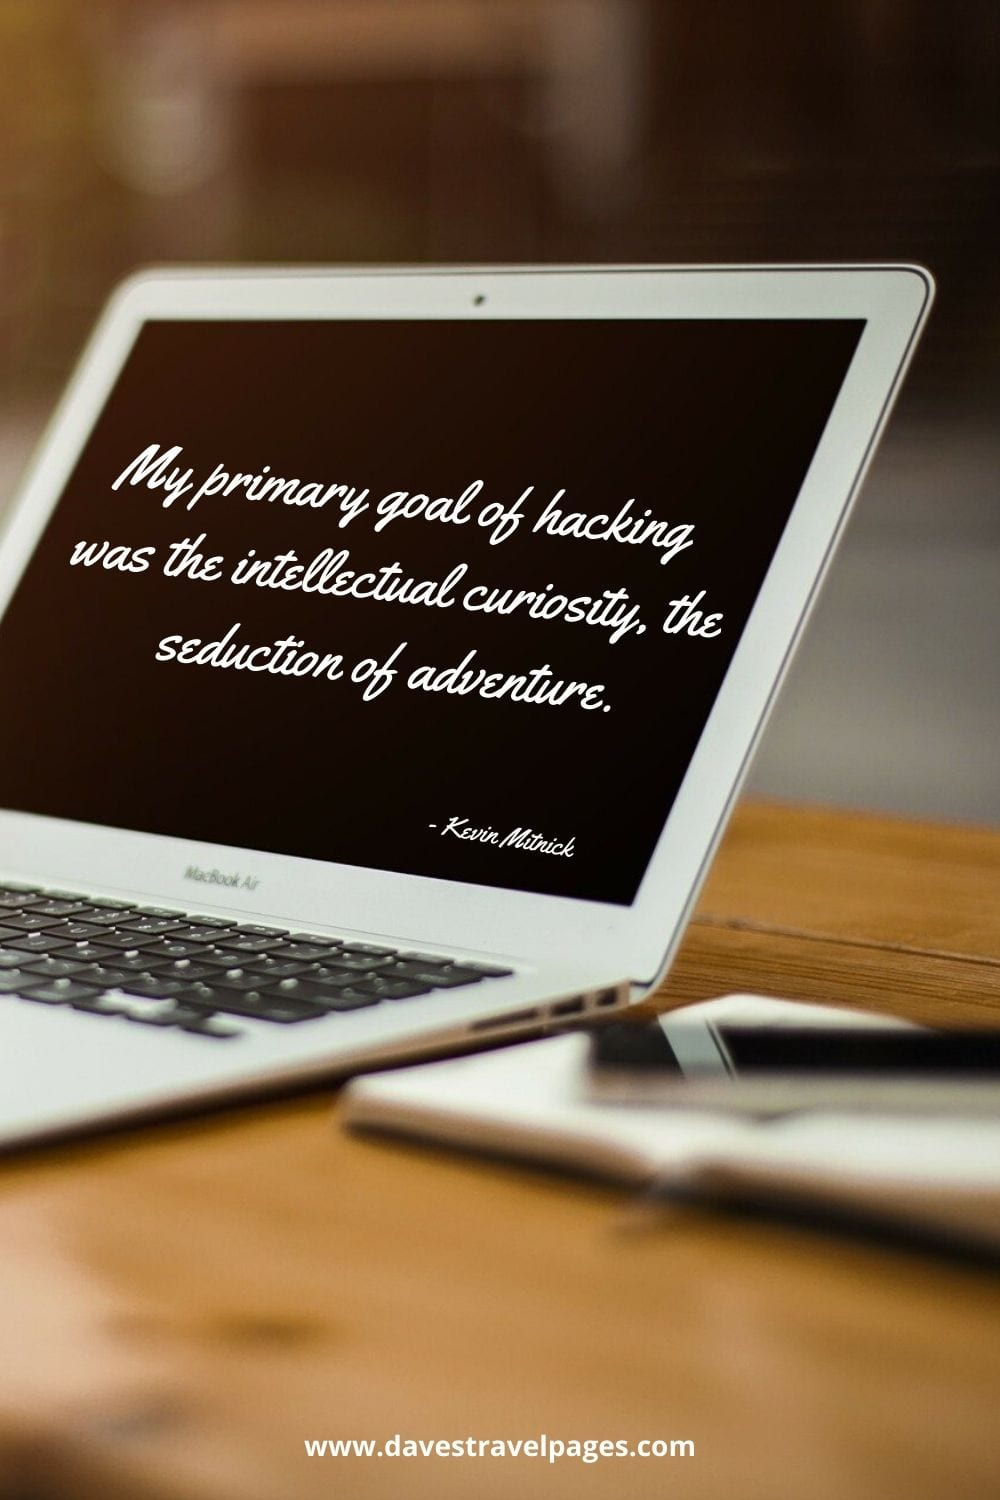 My primary goal of hacking was the intellectual curiosity, the seduction of adventure. Kevin Mitnick